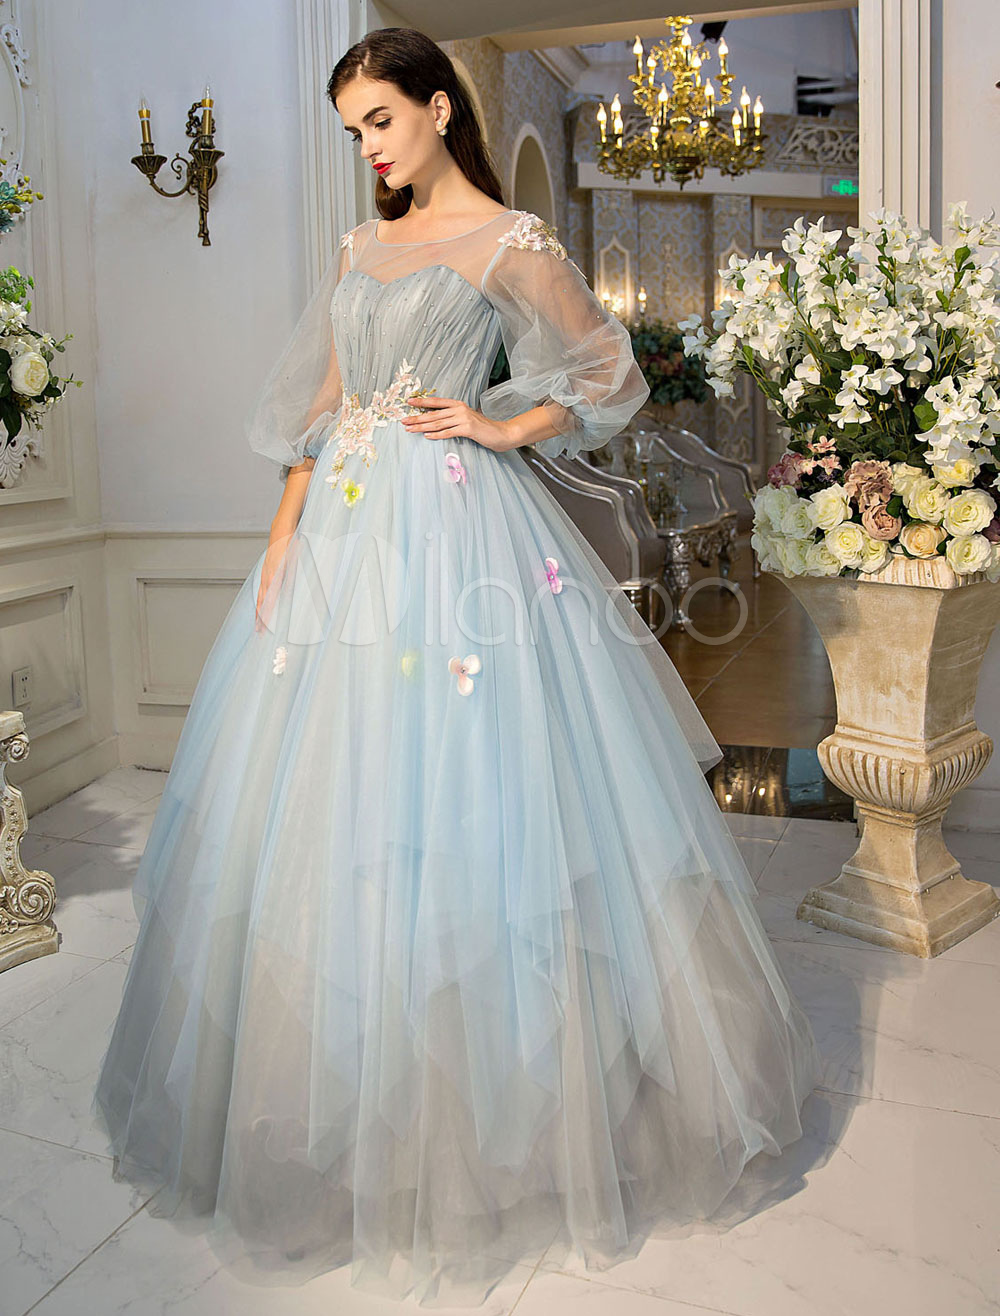 Princess Prom Dresses Luxury Long Sleeve Illusion Tulle Lace Flowers Beaded Baby Blue Tiered Women's Pageant Dresses